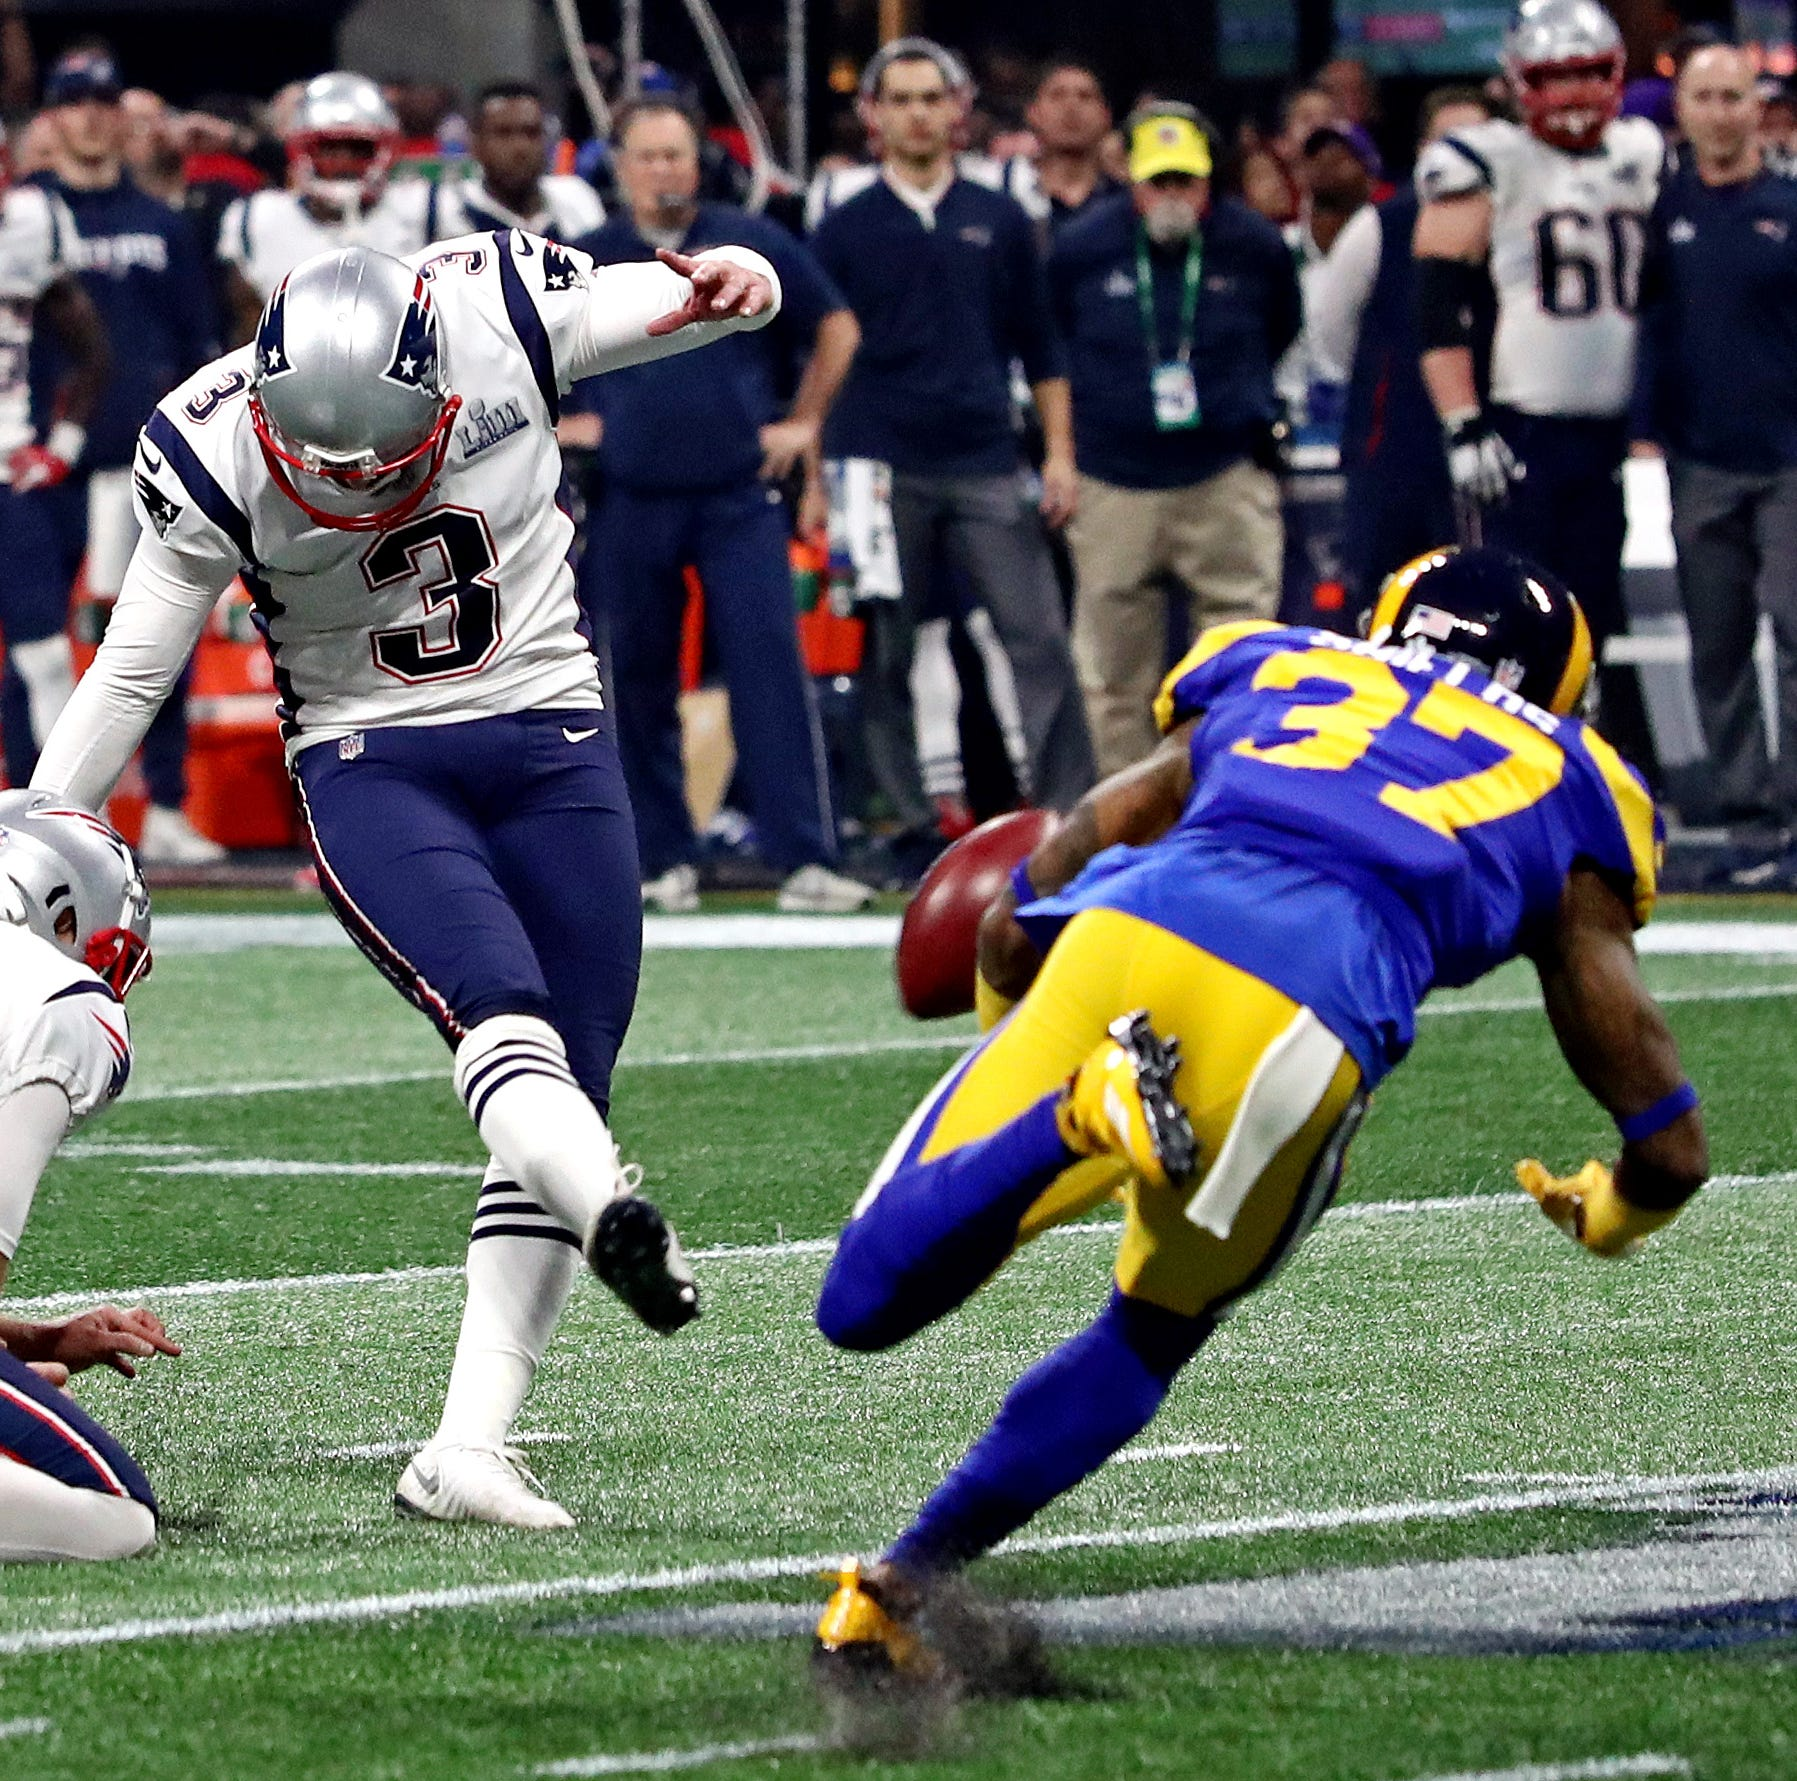 Former Madison Central football star scored nearly half of Patriots' points in Super Bowl